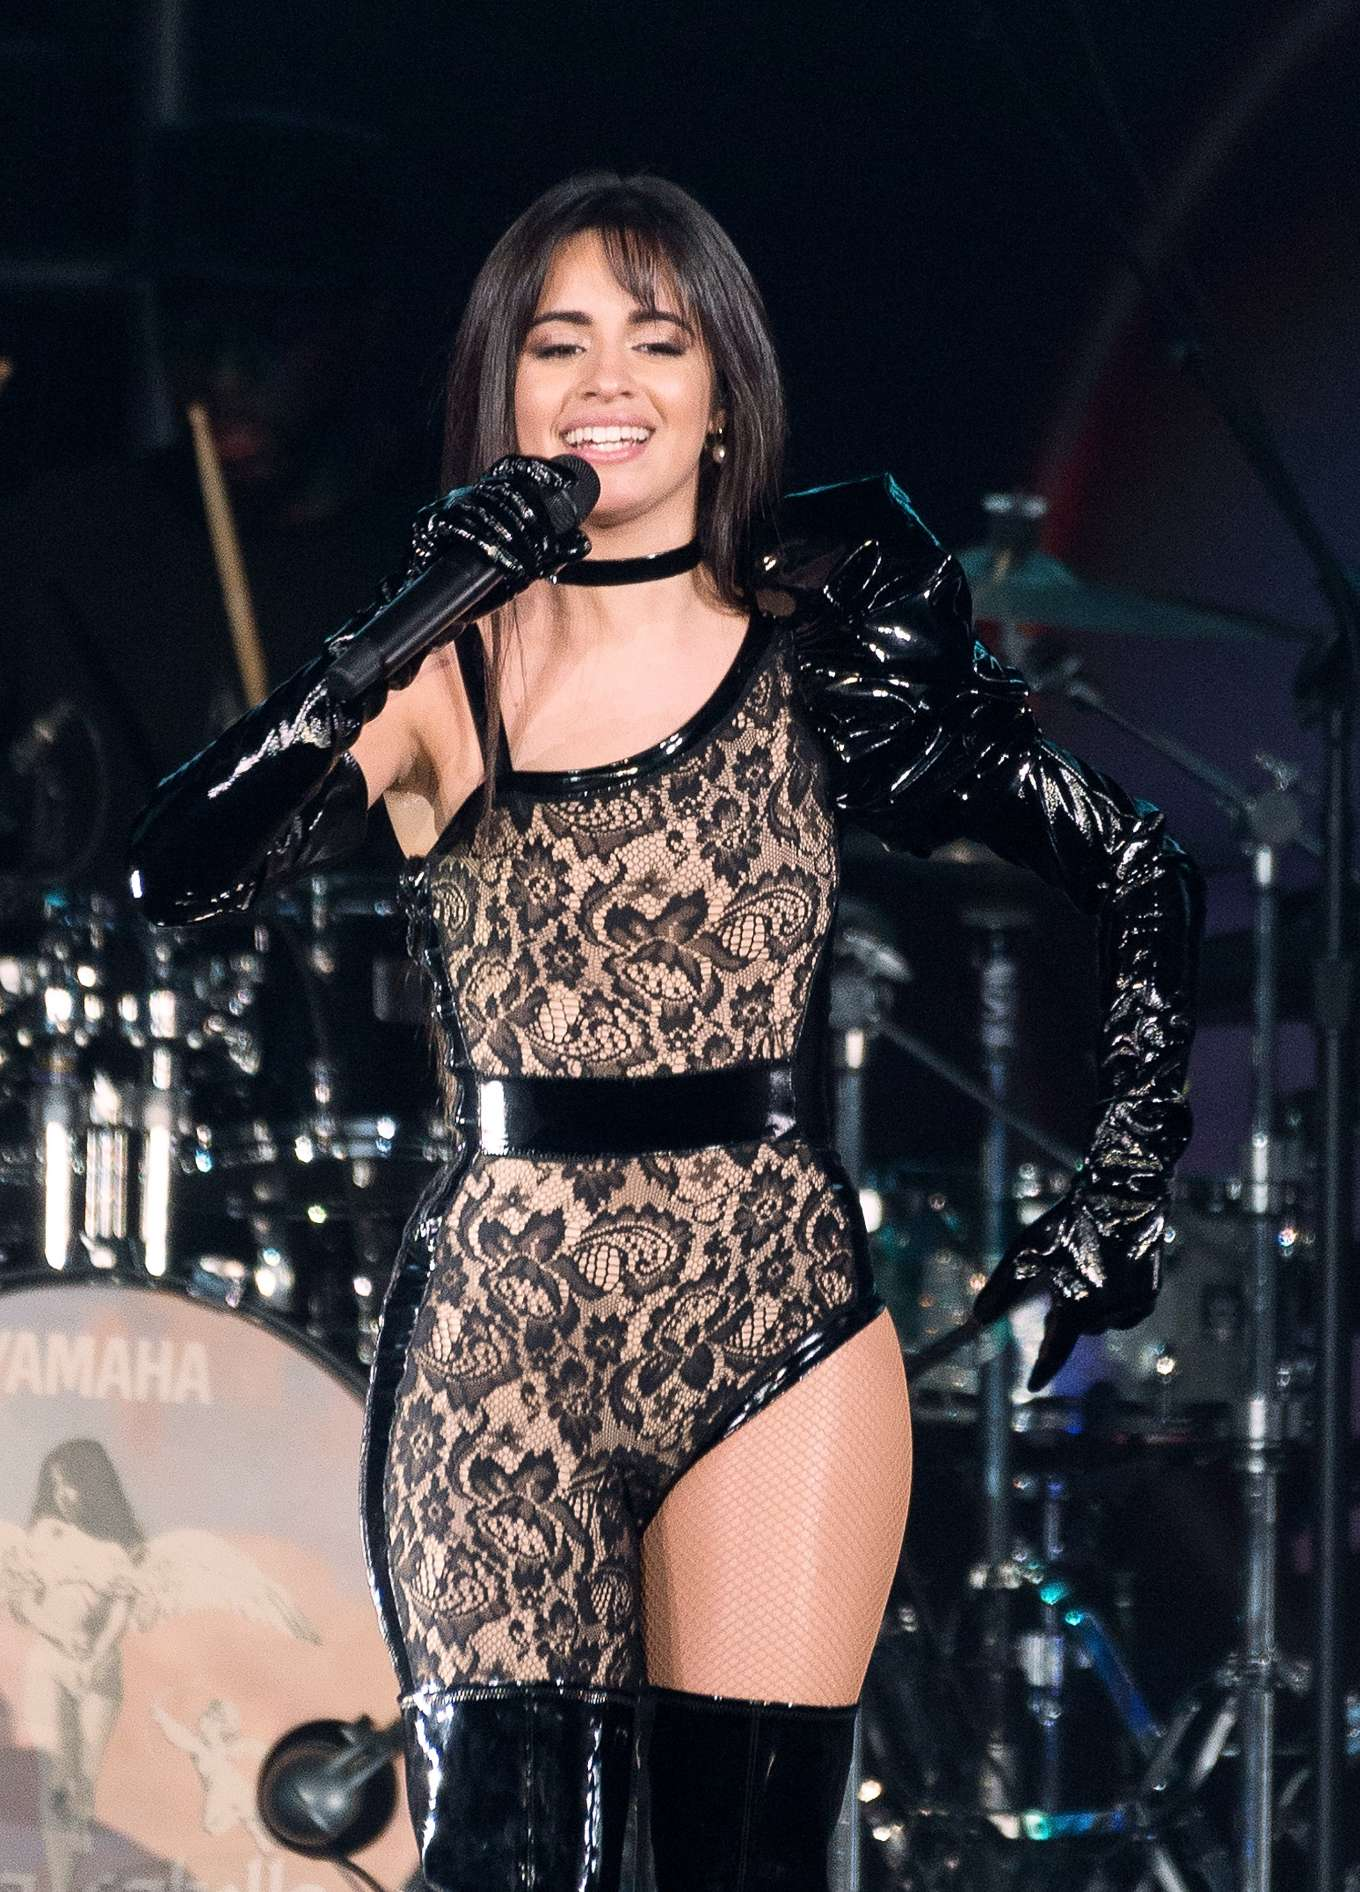 Camila Cabello - Performs at B96 Jingle Bash in Chicago